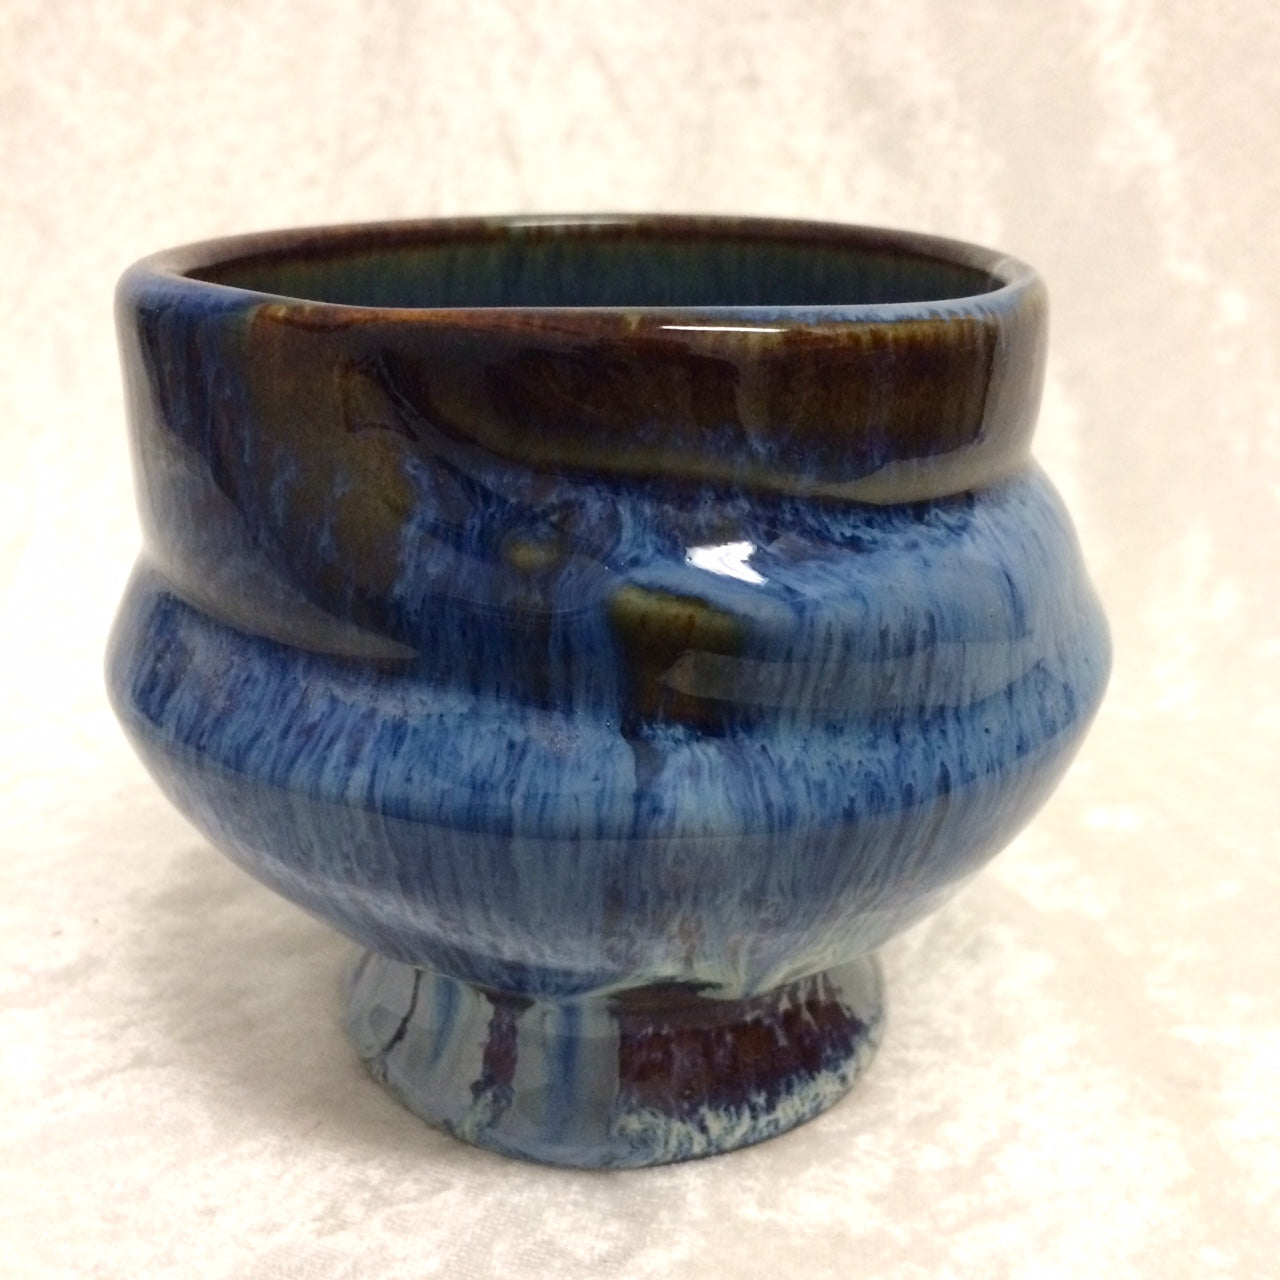 Porcelain Pottery Tea Bowl